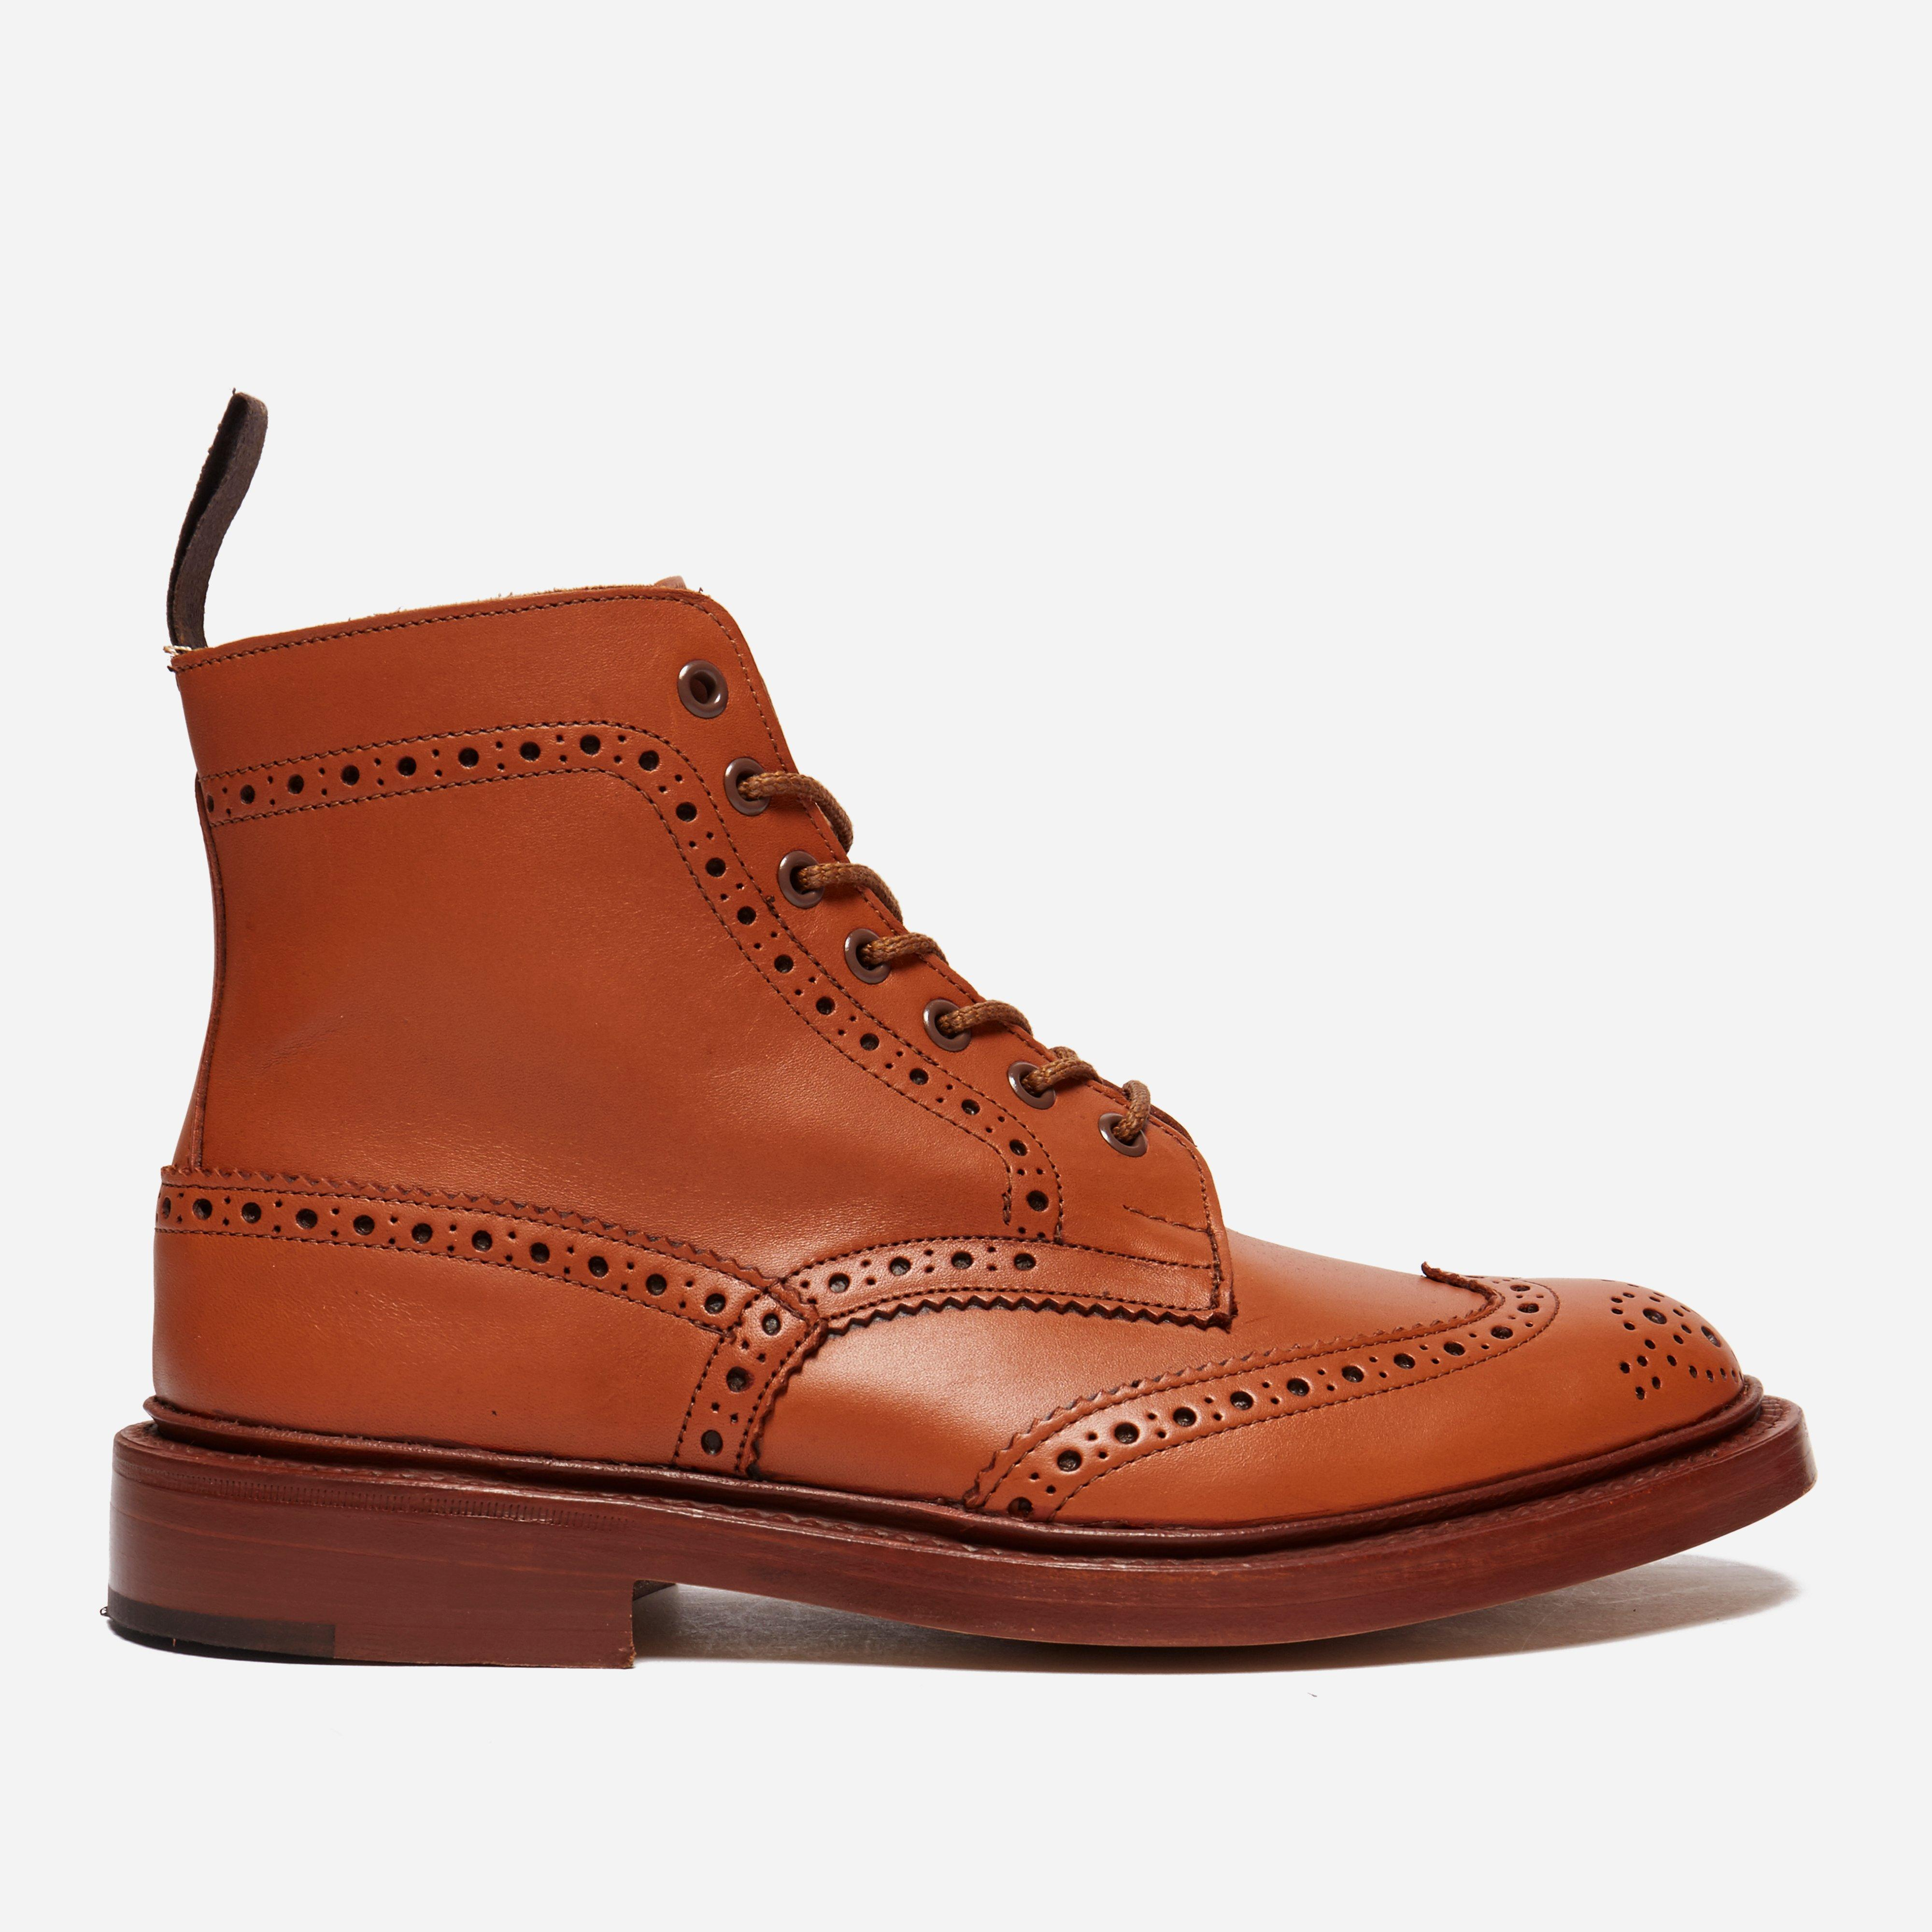 bd597dcaa8032 Tricker's Stow Brogue Derby Country Boot in Brown for Men - Save 10 ...